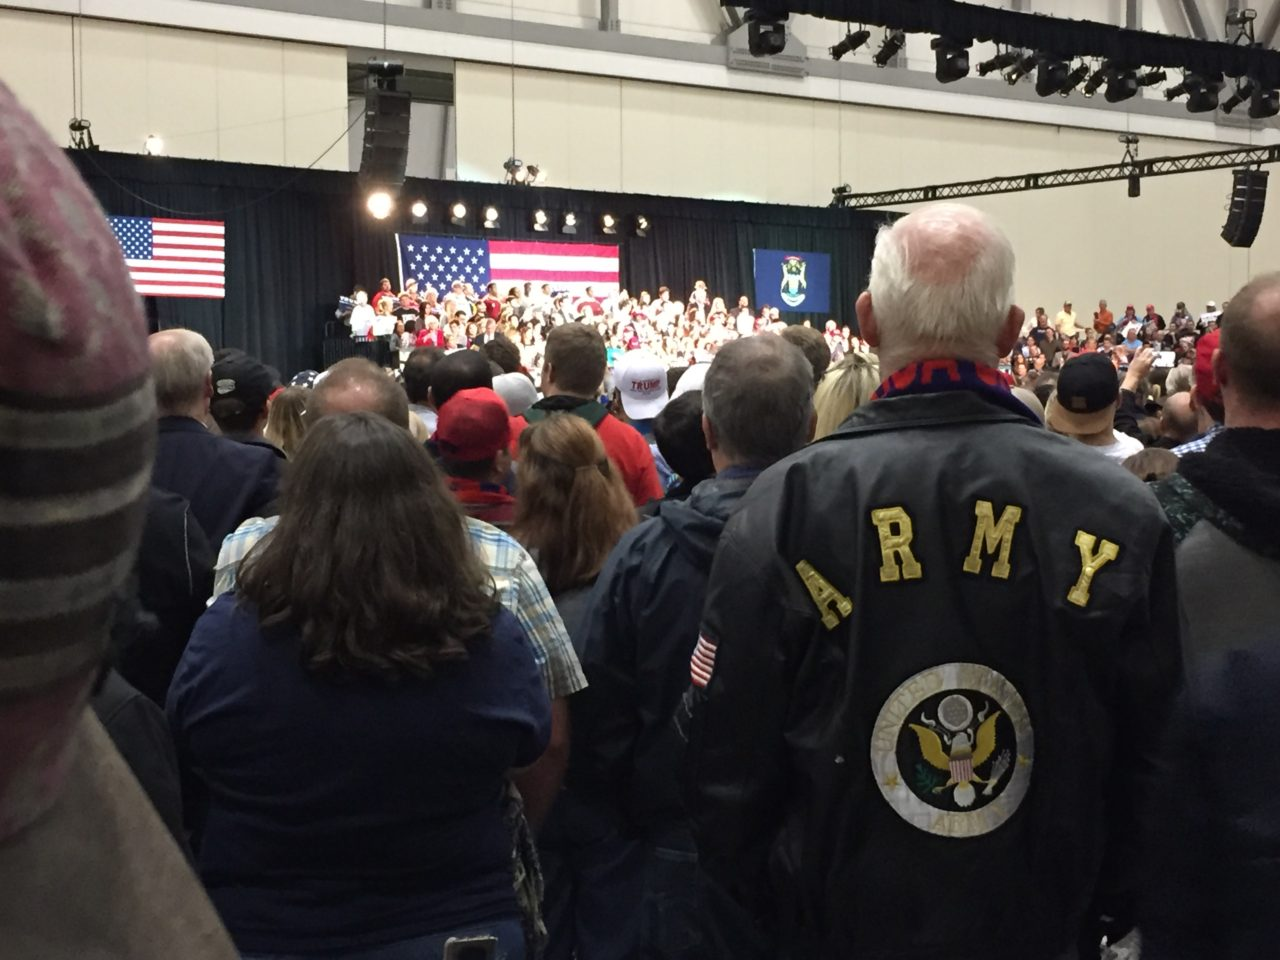 Trump, Pence Close Out 2016 Campaign with Midnight Michigan Rally